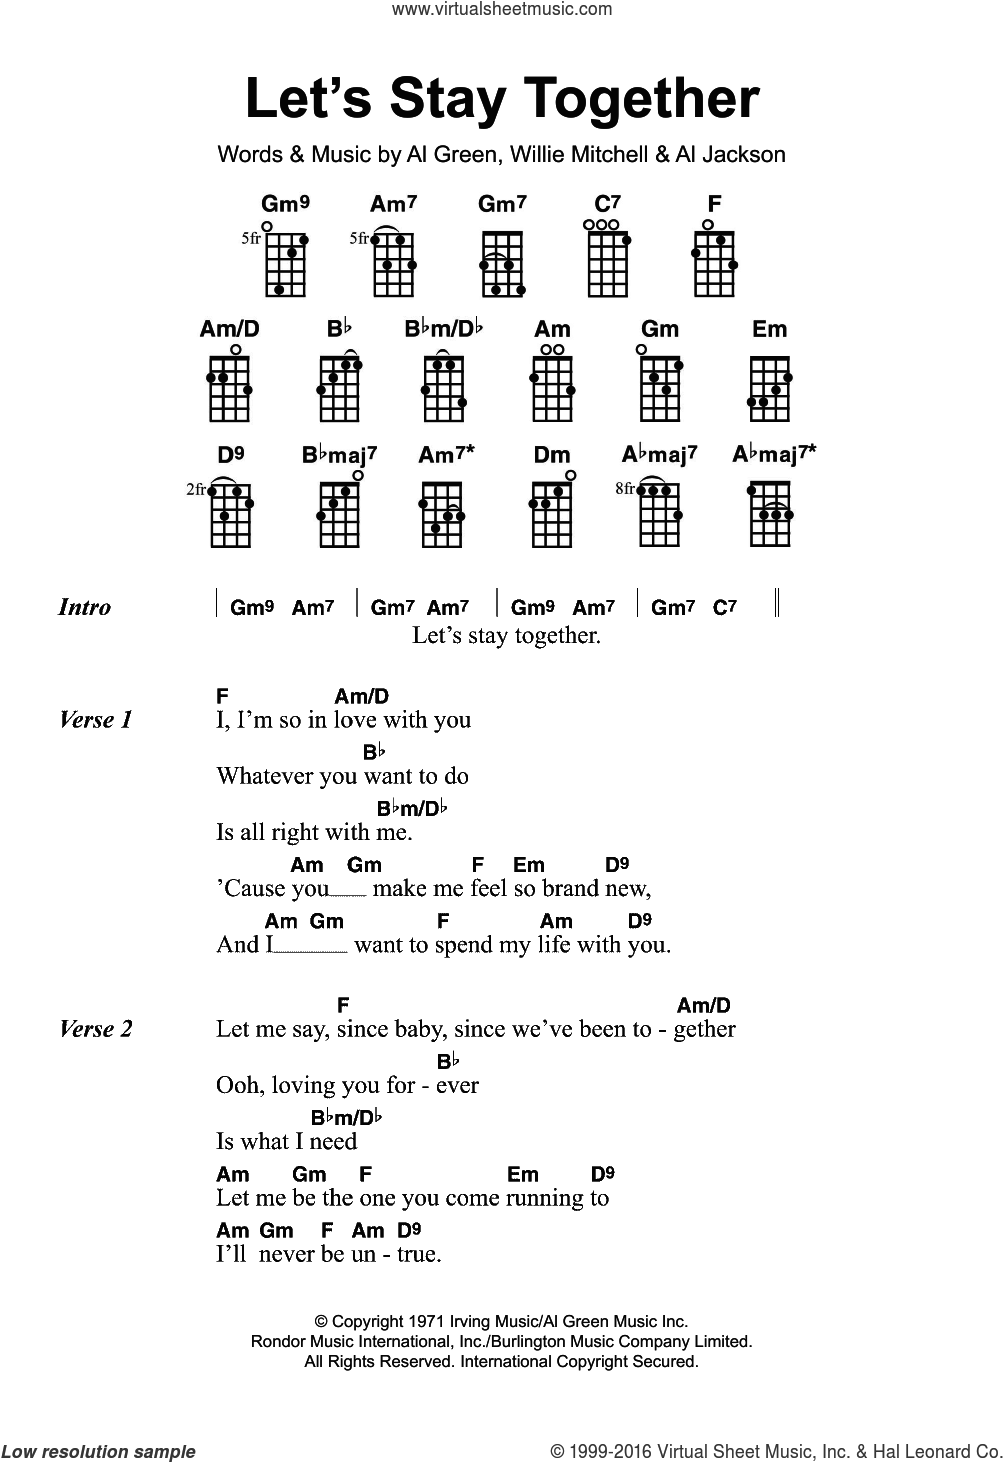 Let's Stay Together sheet music for ukulele by Al Green and Willie Mitchell, intermediate ukulele. Score Image Preview.